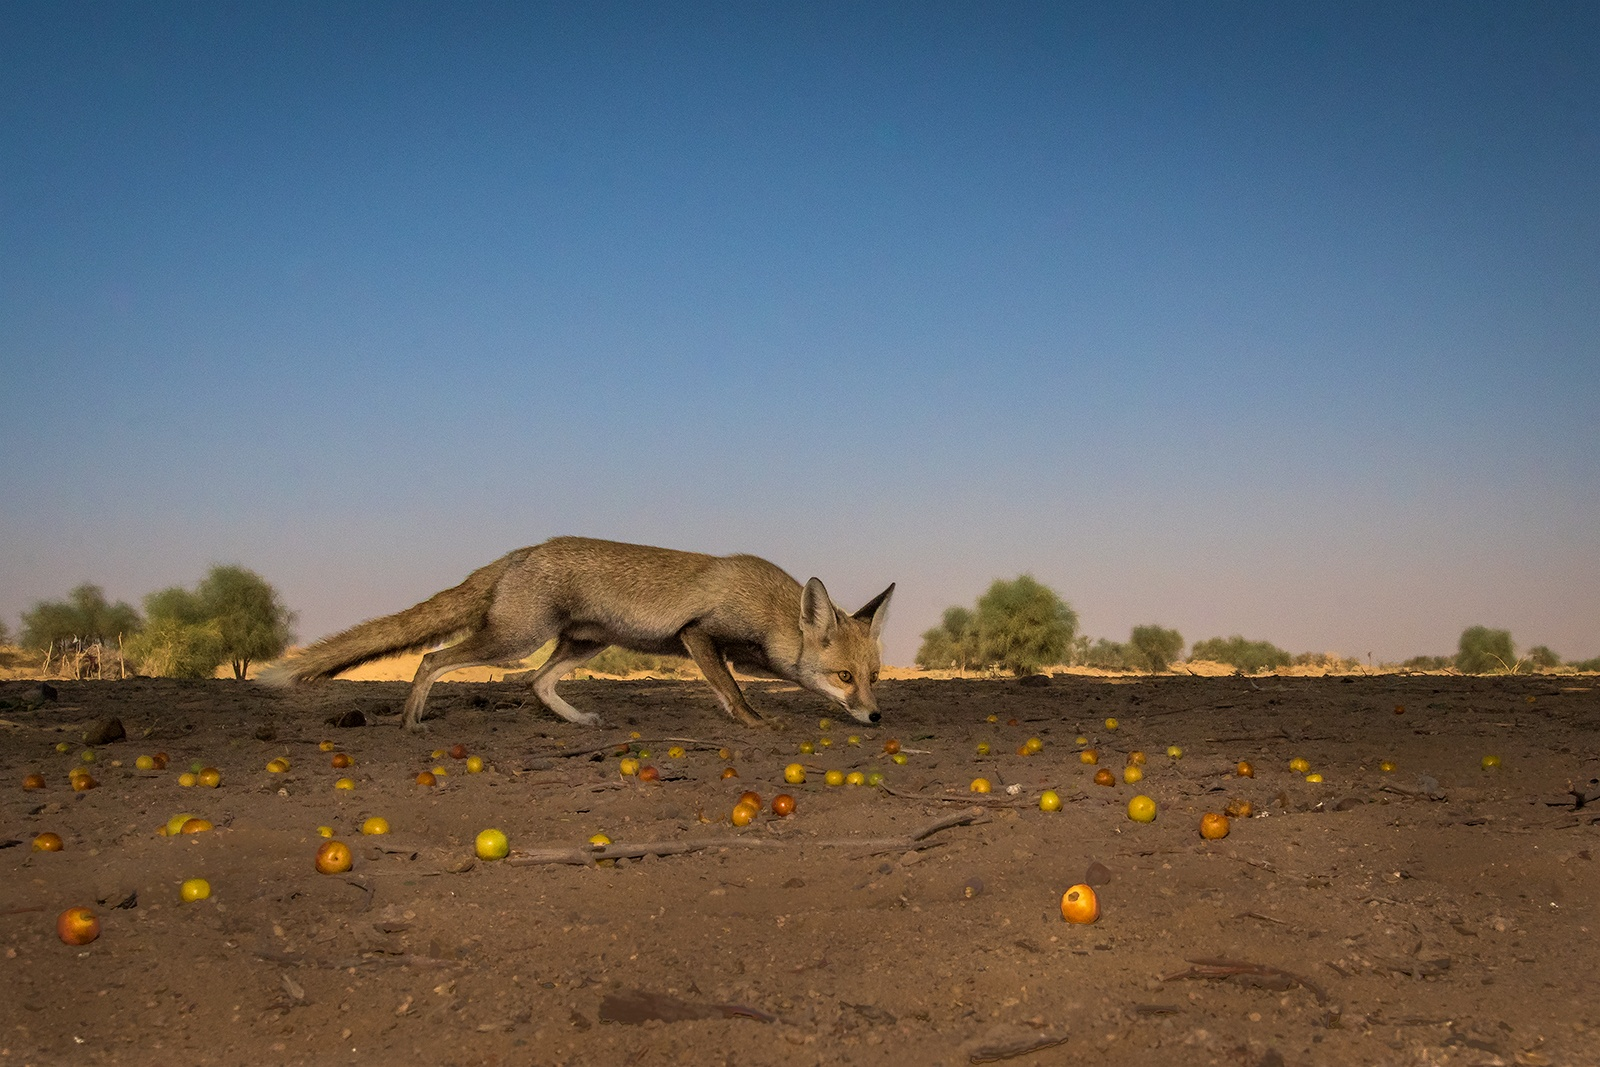 A desert fox, an omnivore, inspects the land in search of food. It survives on desert insects and lizards along with berries and plant matter. The sandy-yellow colour of the desert fox's coat helps it blend beautifully into the desert landscape. Photo: Soumabrata Moulick